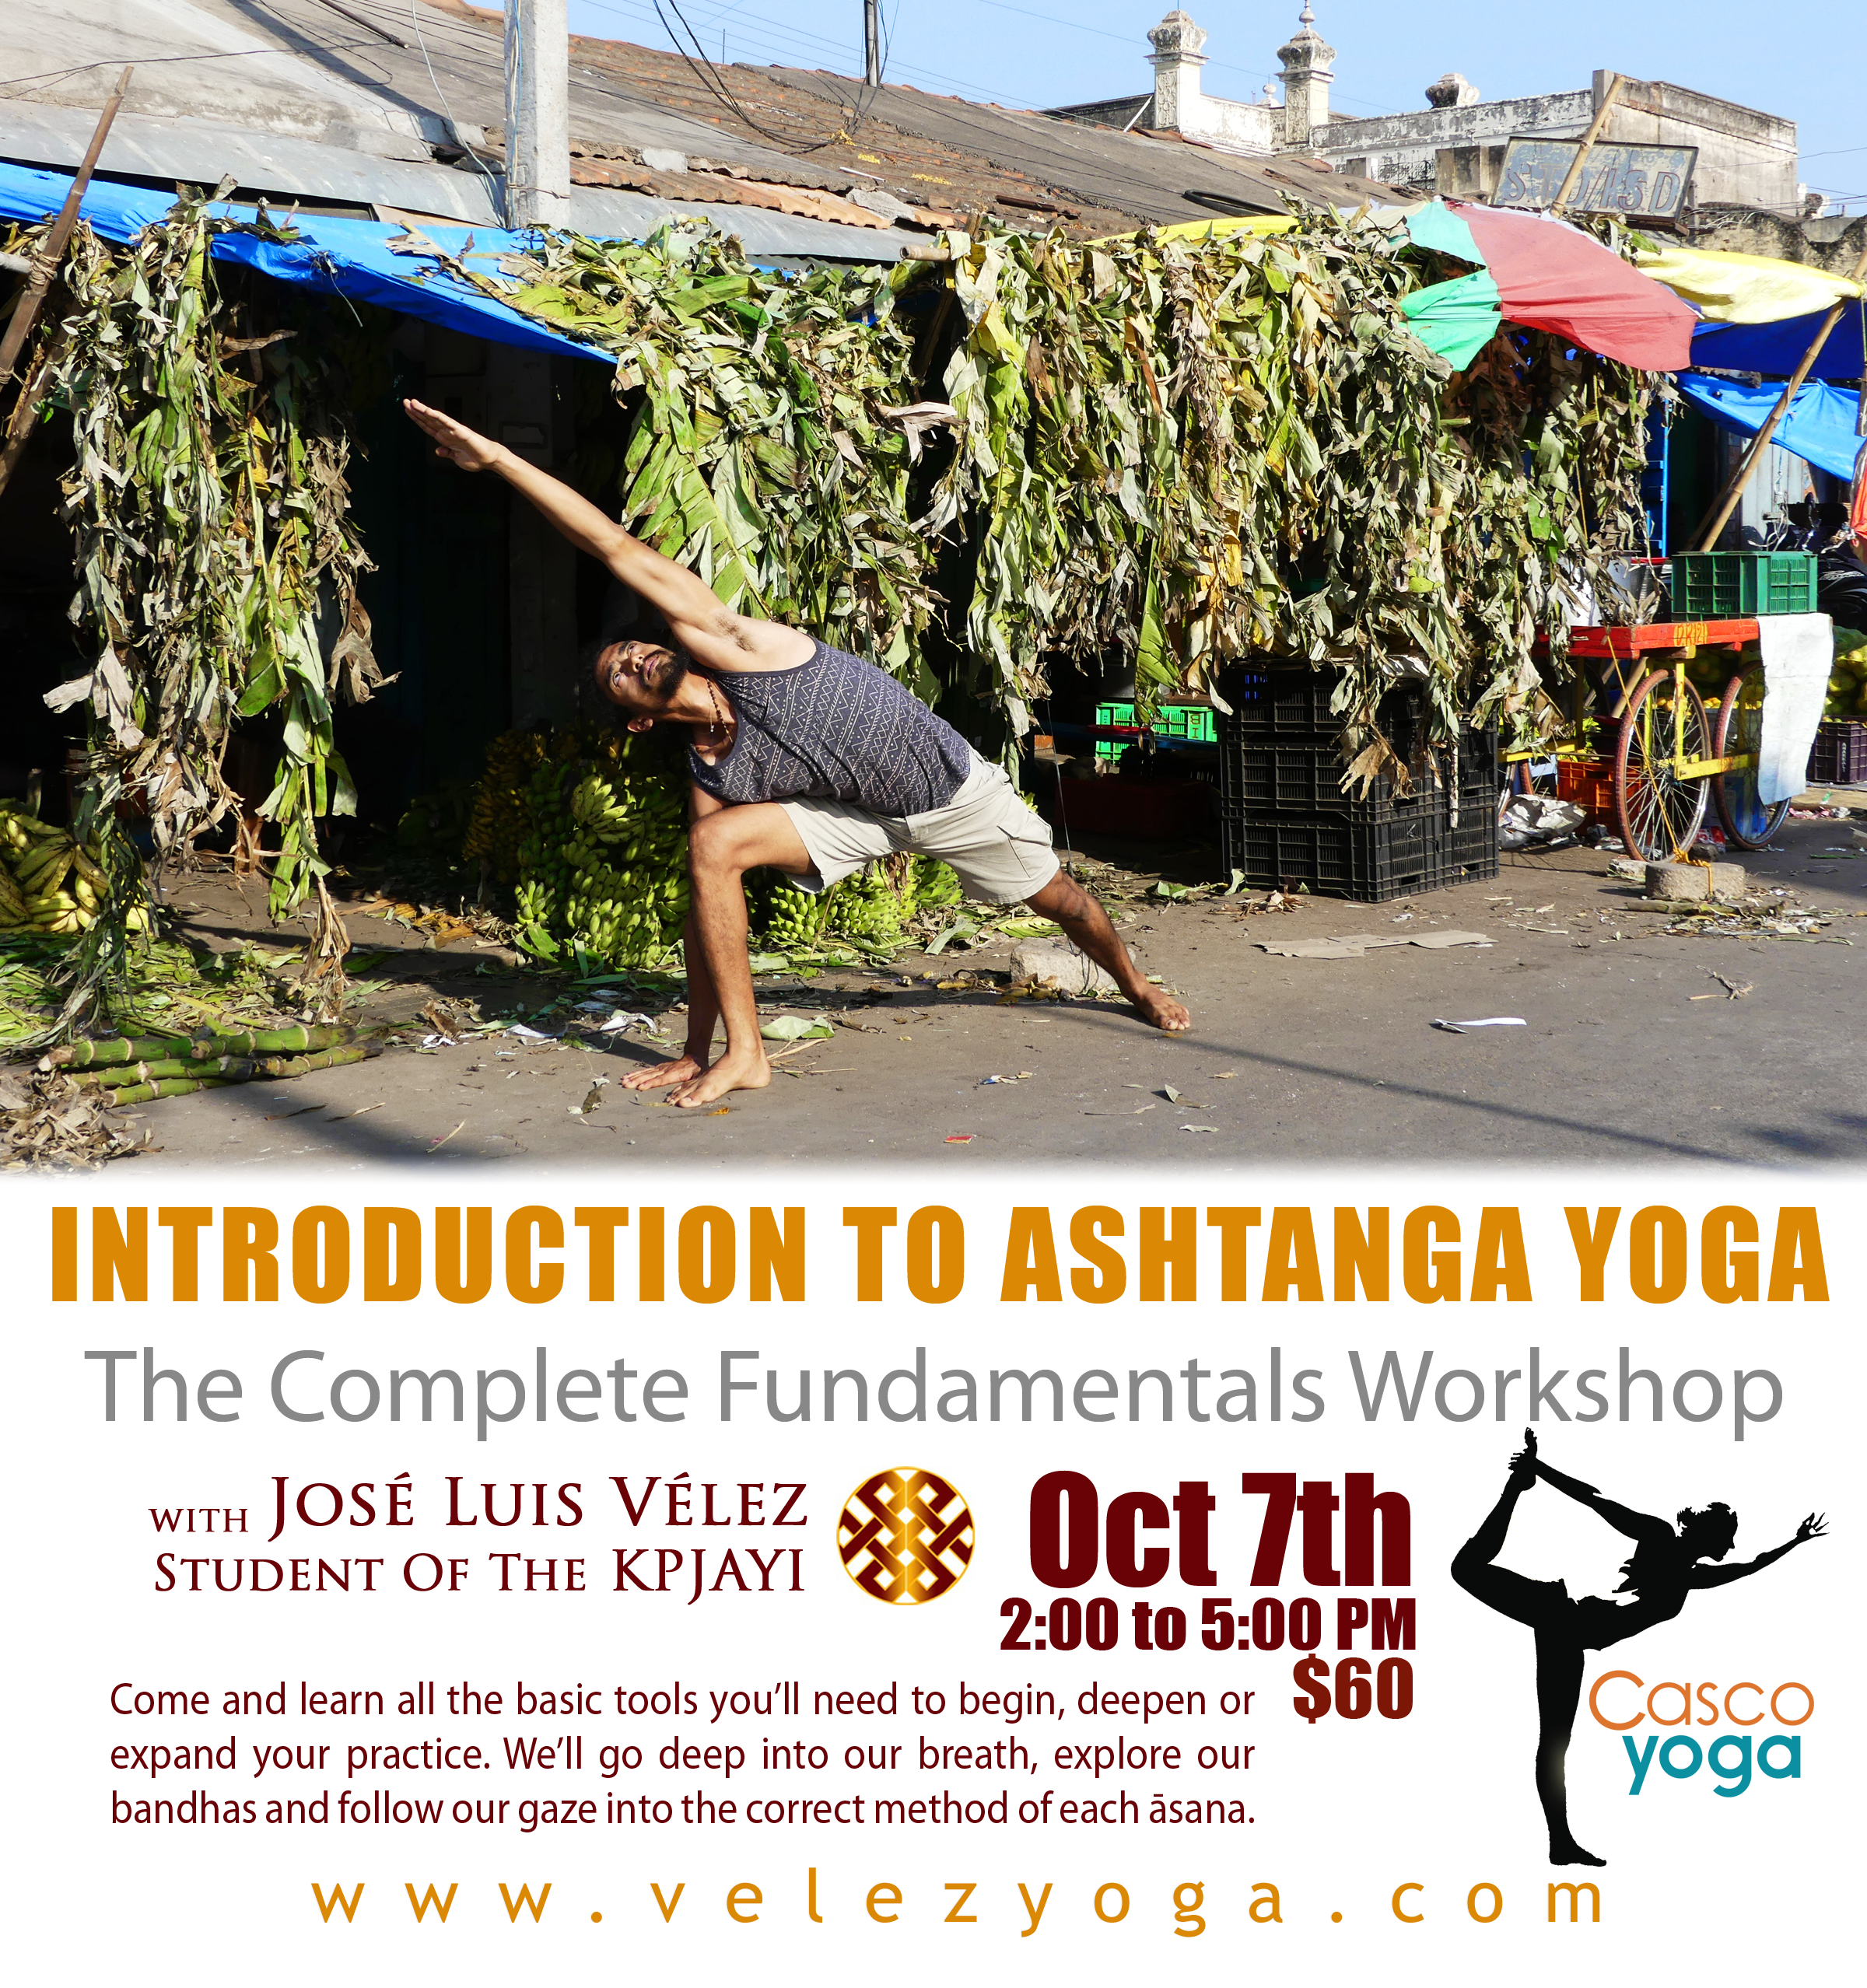 Introduction to Ashtanga Yoga, at Casco Yoga Panama. Casco Viejo. Casco Antiguo. Panama City Panama. José Luis Vélez